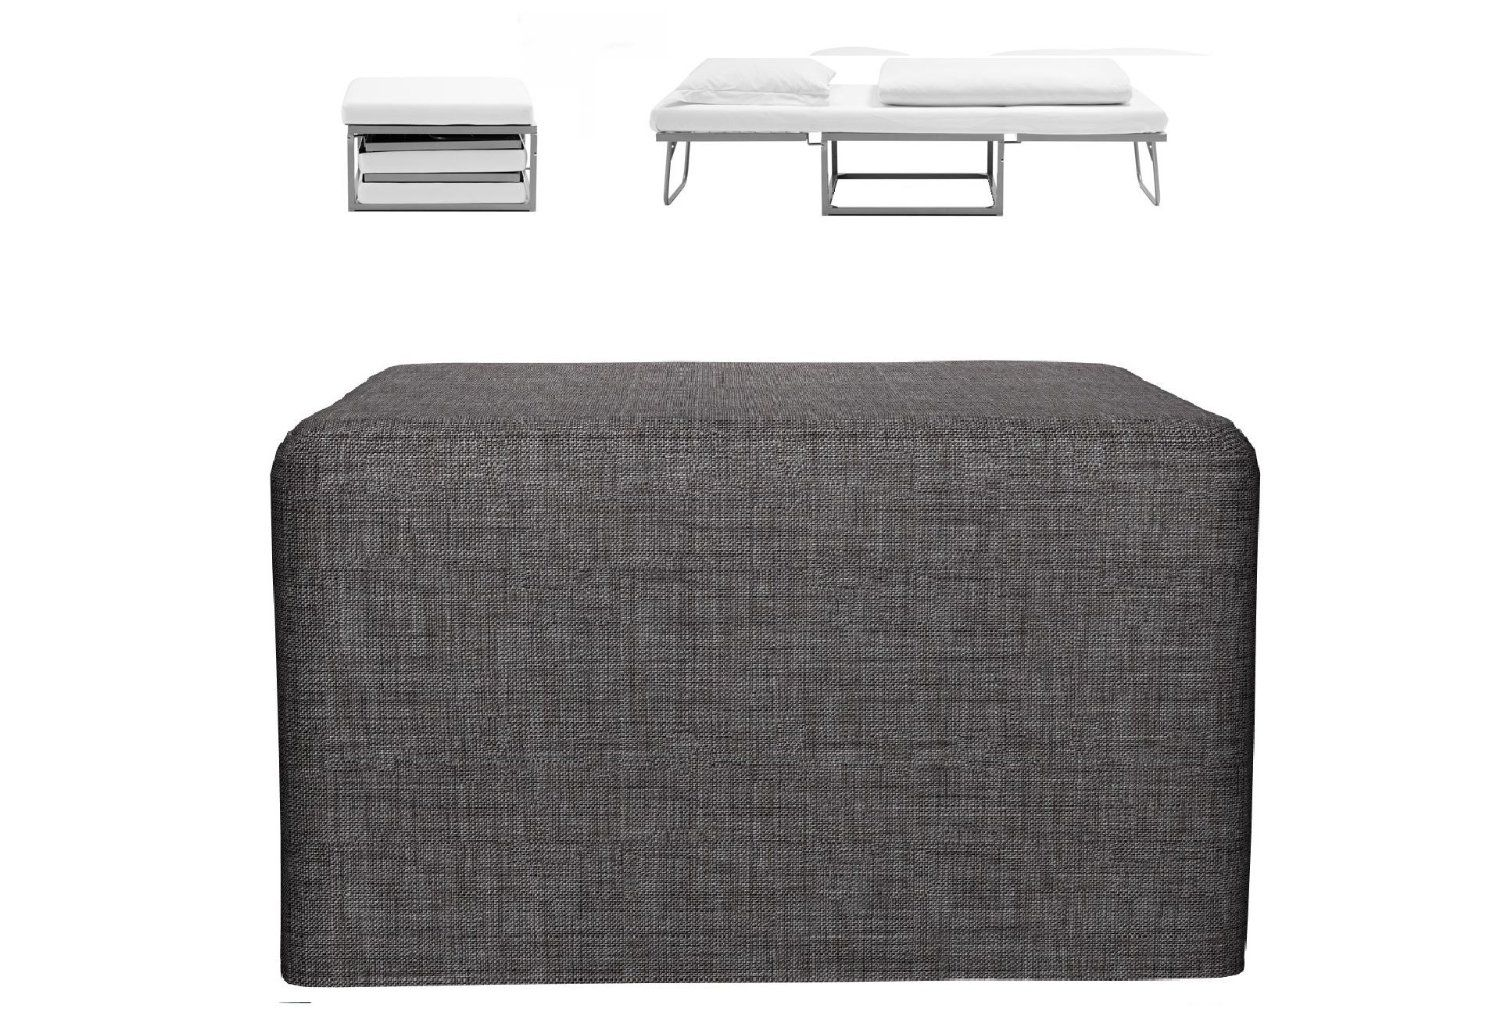 BED IN A CUBE 3 in 1 COMPACT FOLDING SINGLE SOFA GUEST